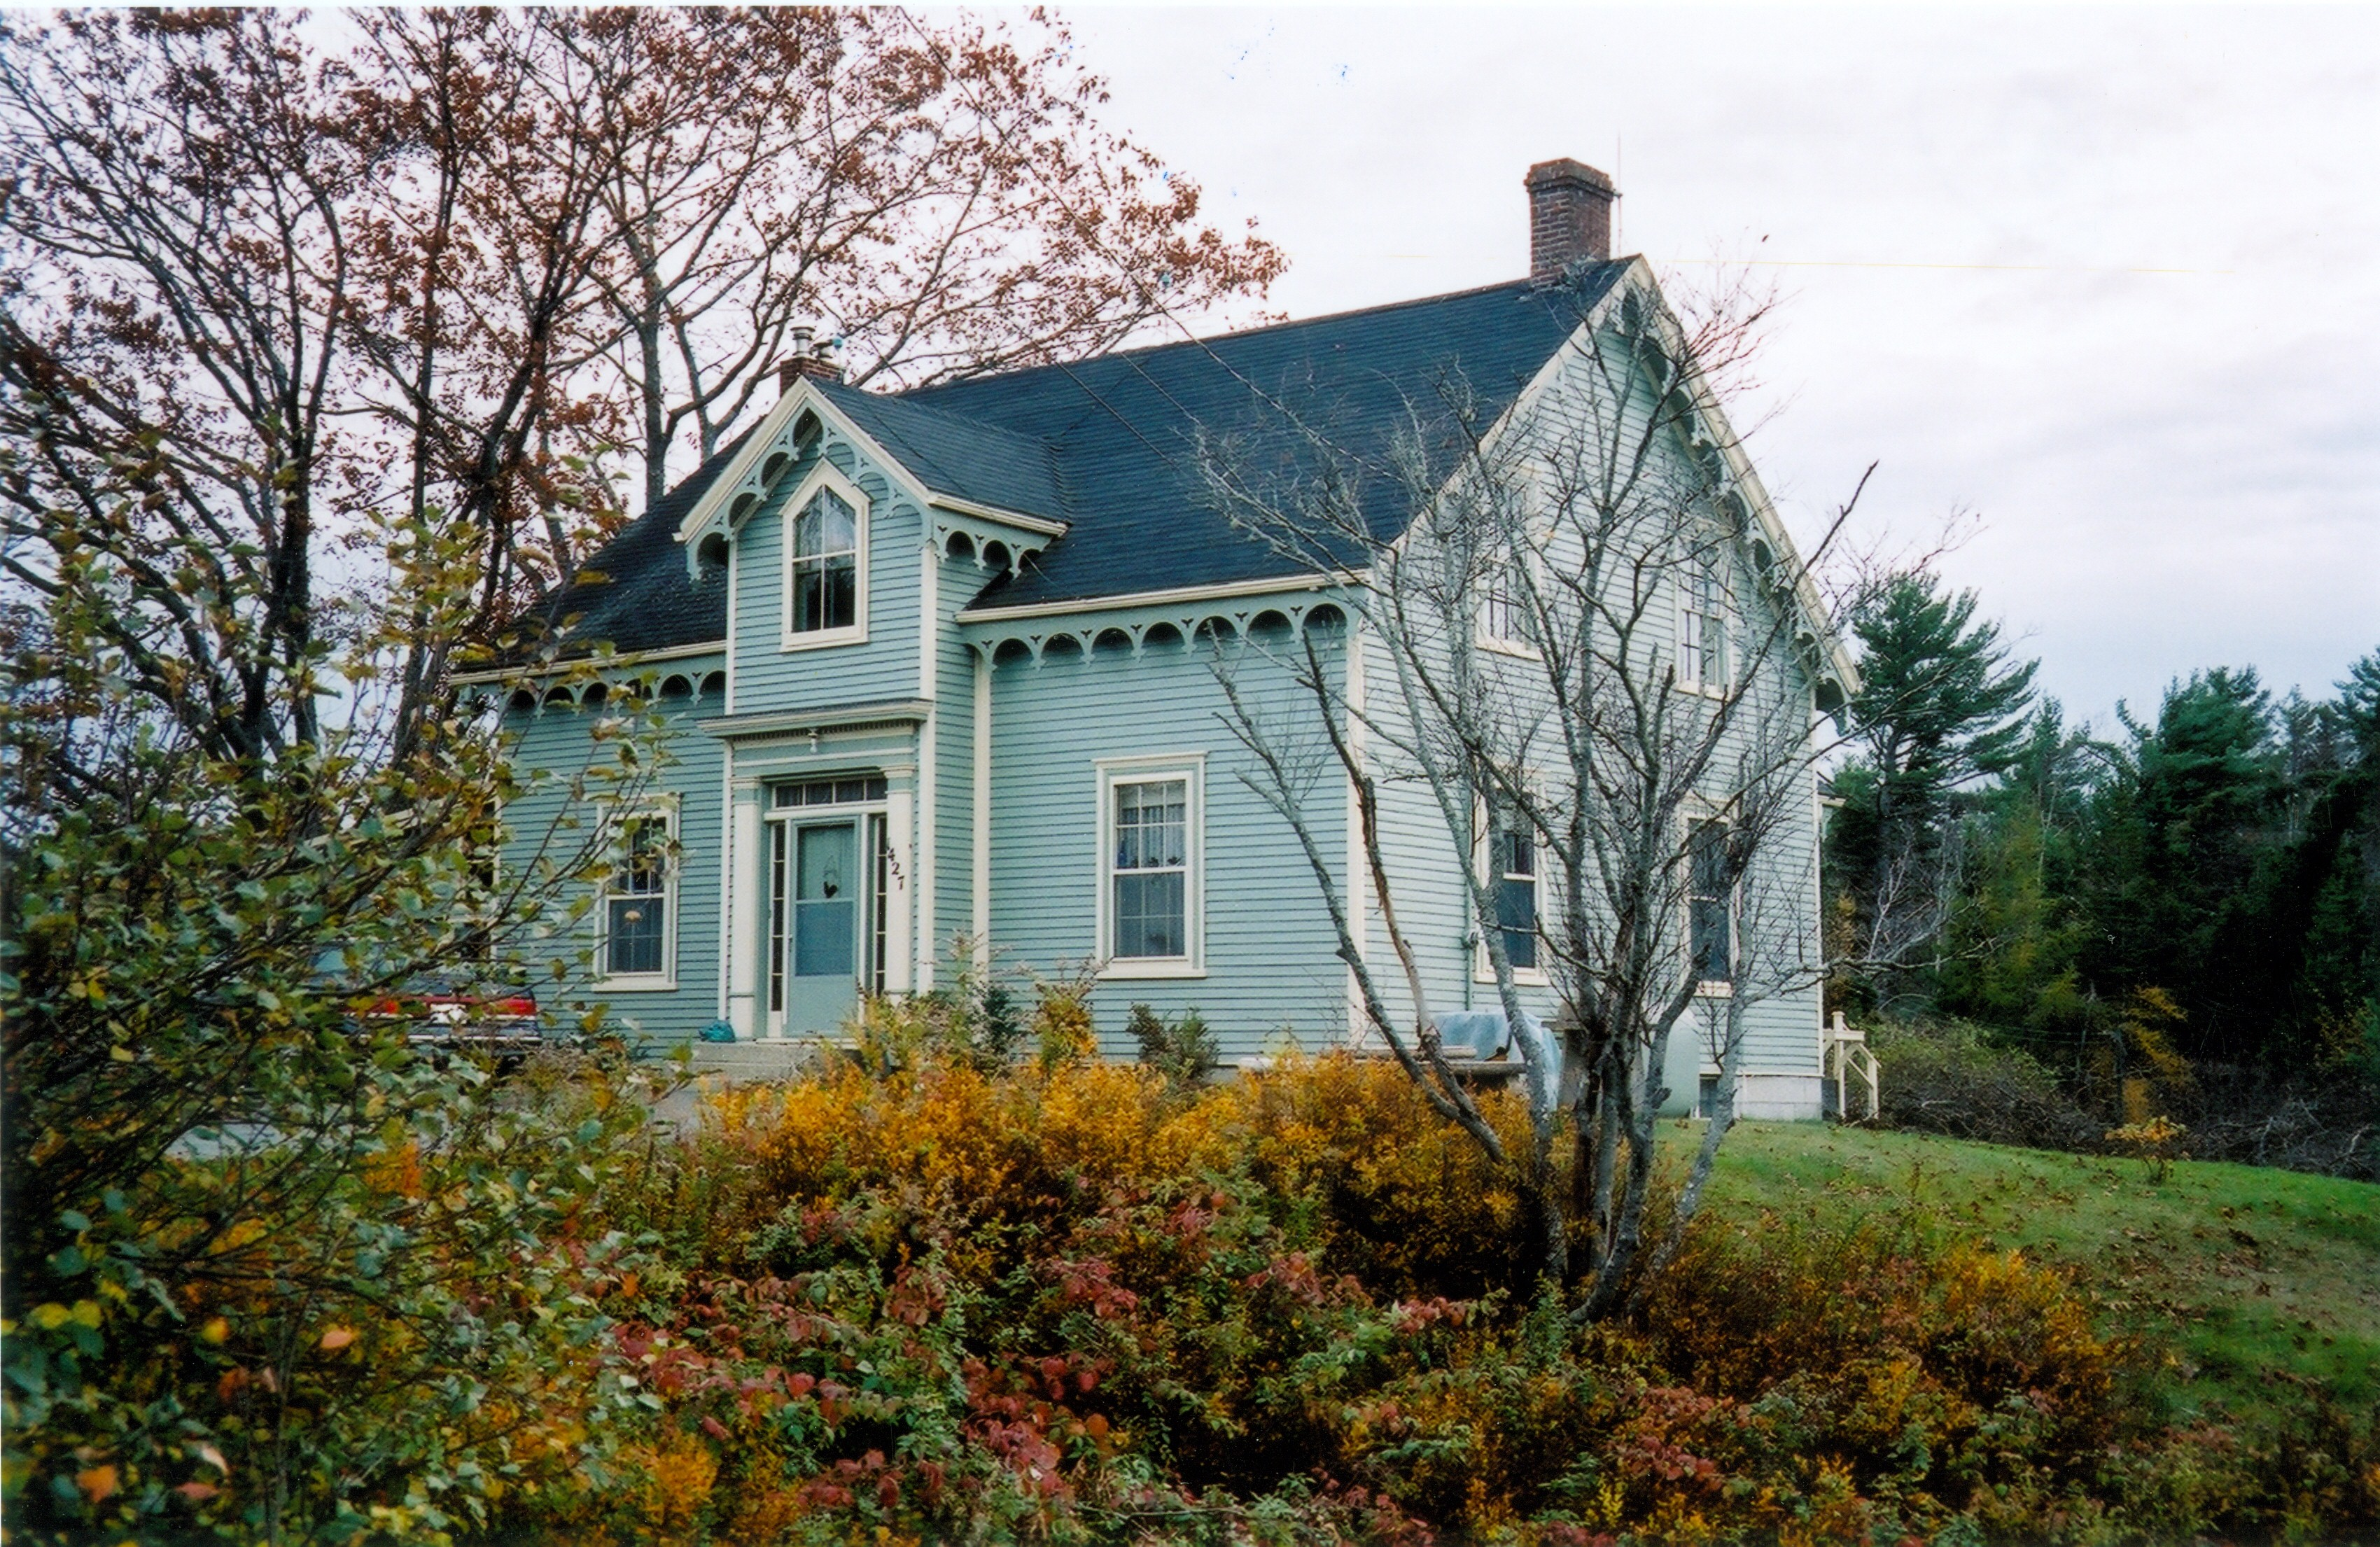 Moxin House on Cobequid Road